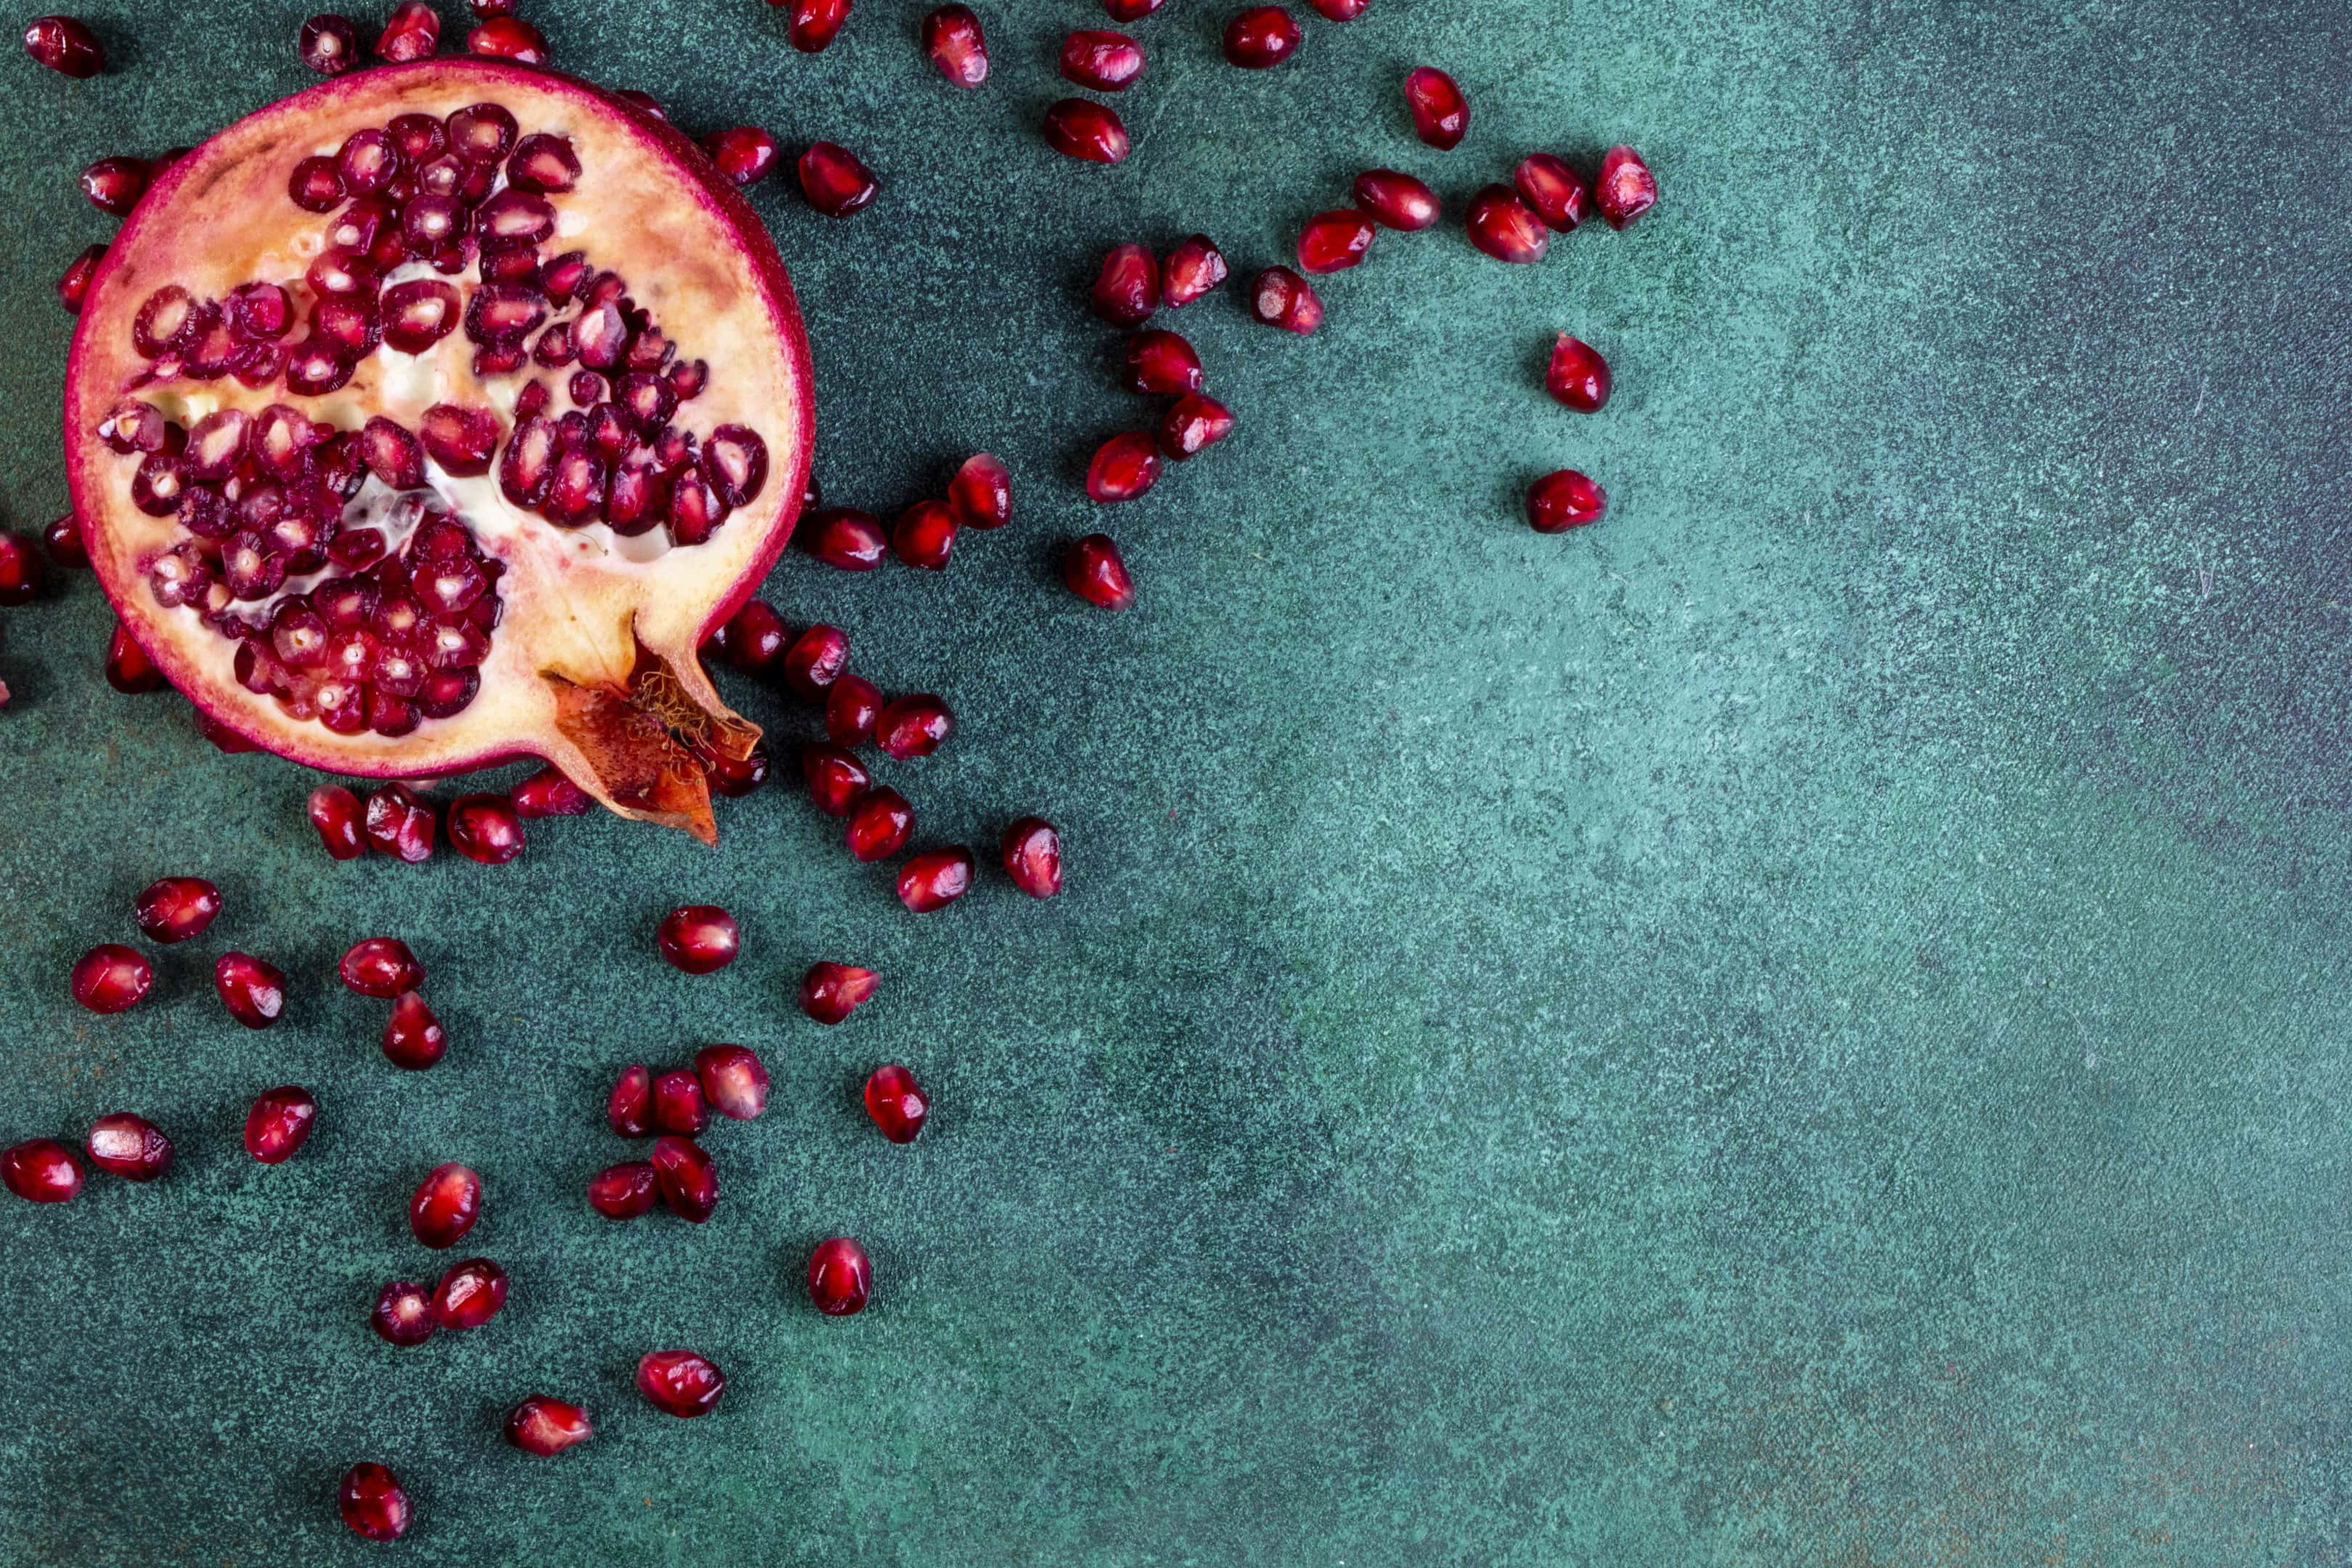 Chopped half of pomegranate on green table